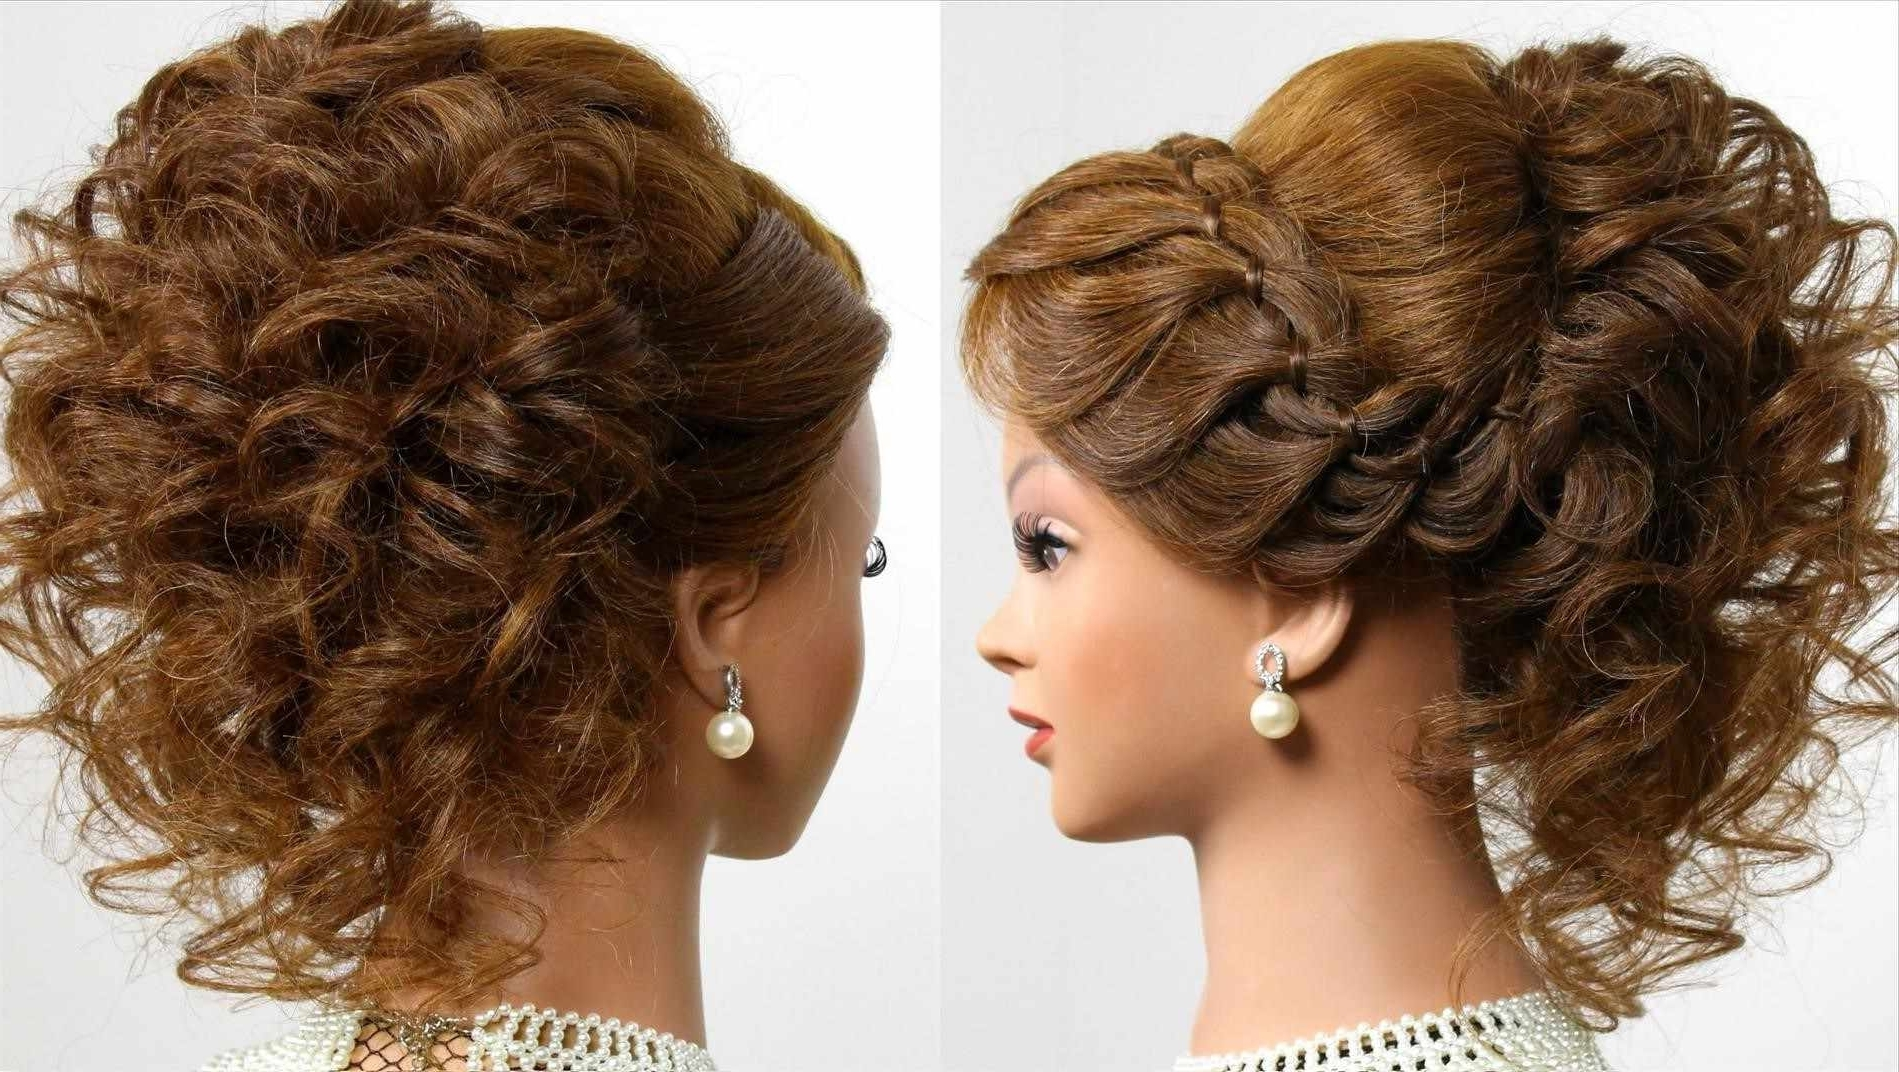 Hairstyles Medium Length Hairstyles Updos For Formal Updos Medium With Regard To Updos For Medium Length Curly Hair (View 7 of 15)